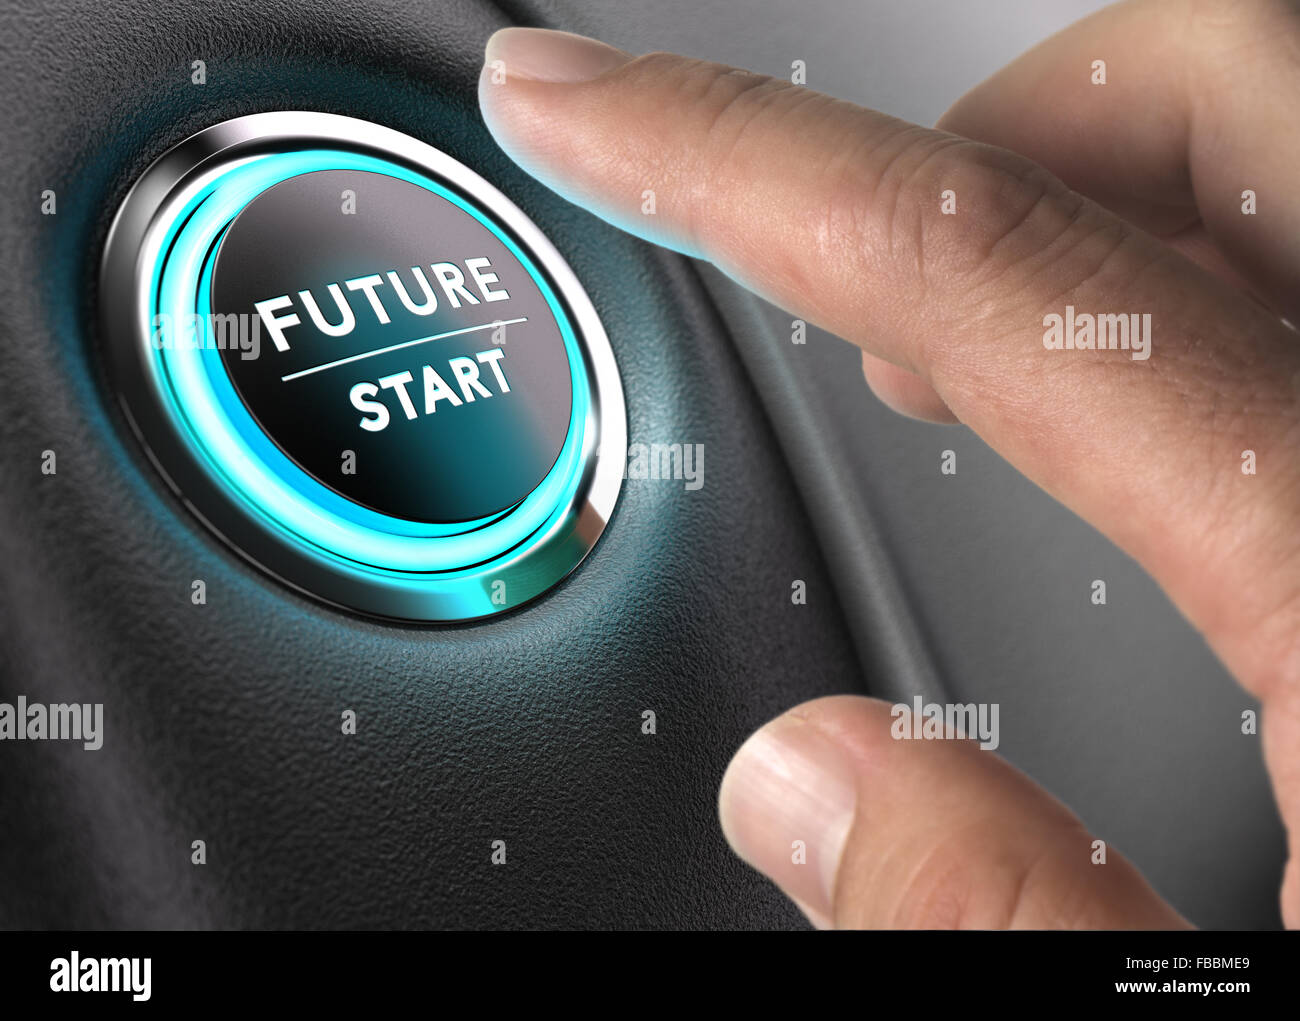 Finger about to press future button with blue light over black and grey background. Concept image for illustration - Stock Image